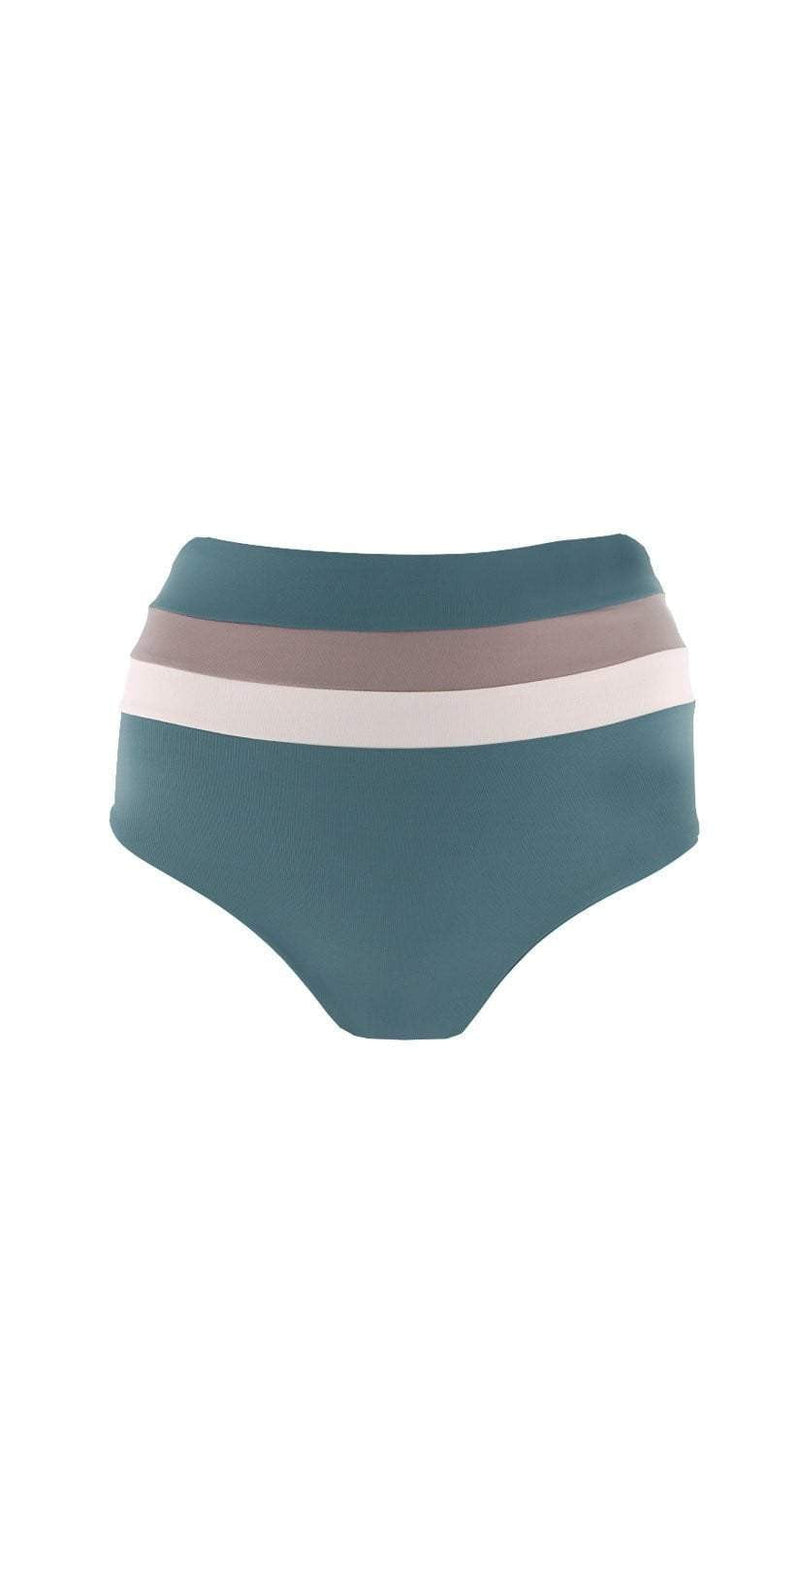 L Space Color Block Portia Bottom in Slated Glass CBPSC18-SLG: